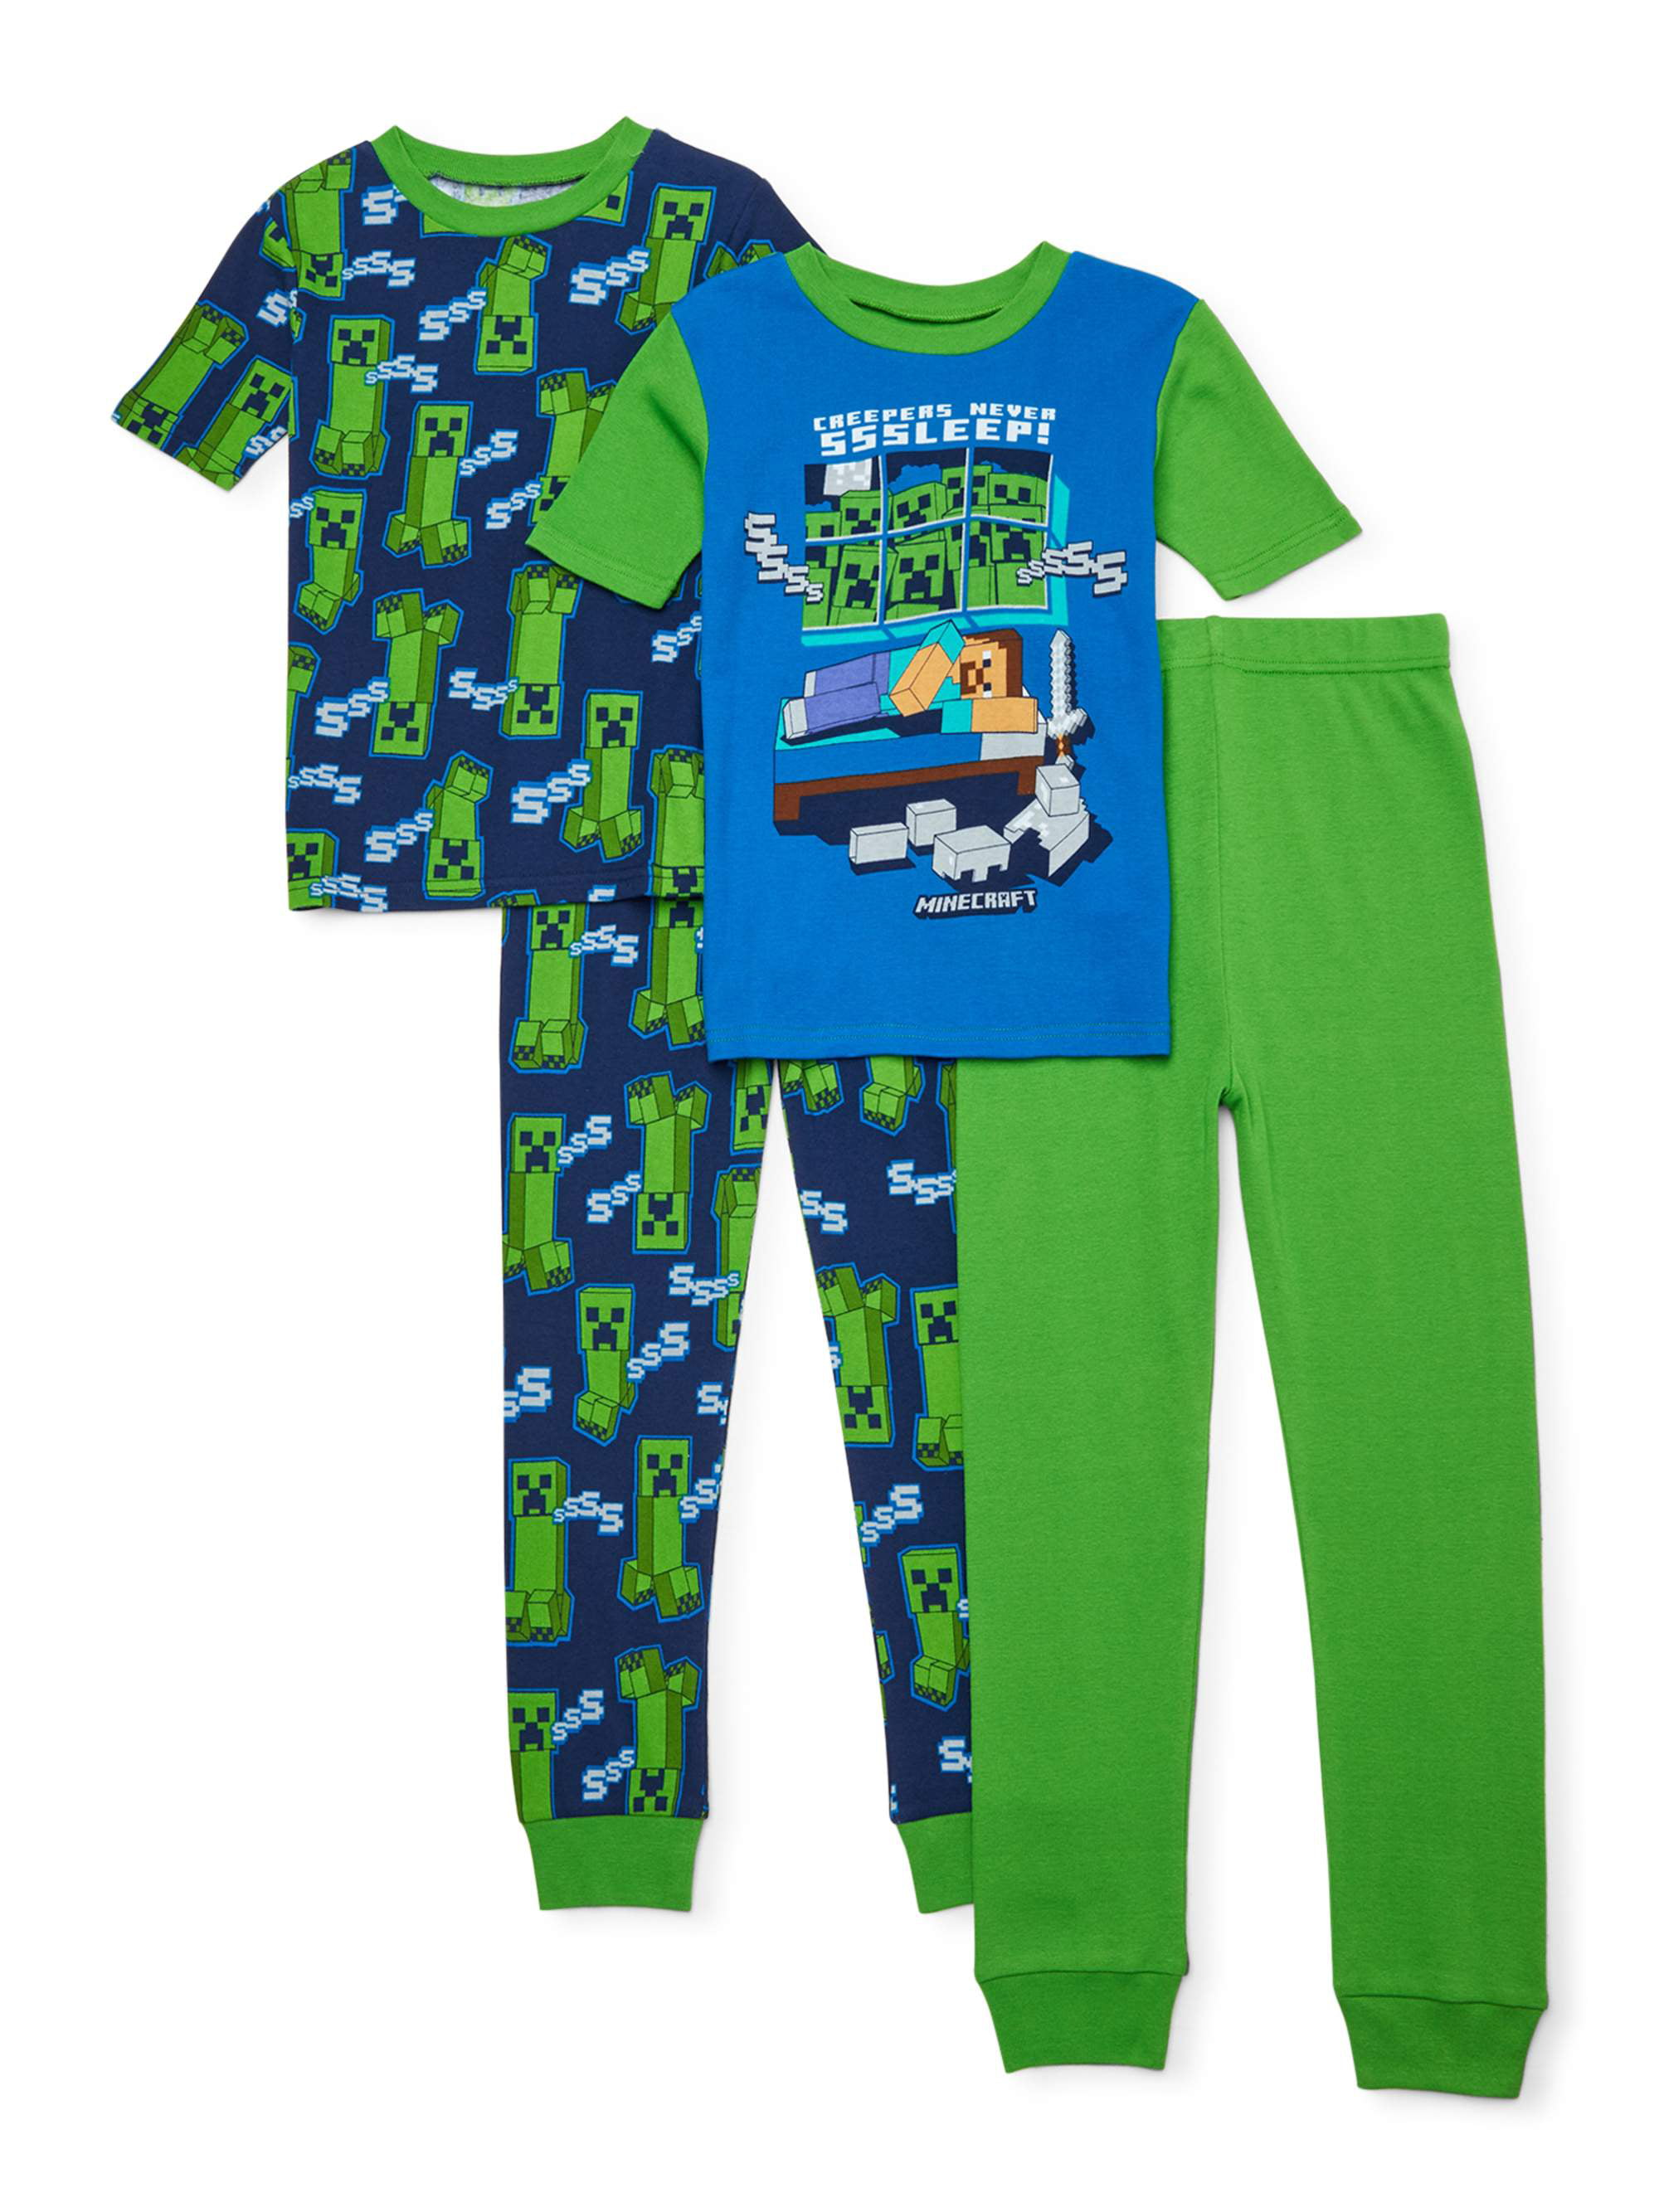 Minecraft Top for Boys Green Creeper Age 6-12 Long Sleeve 100/% Cotton